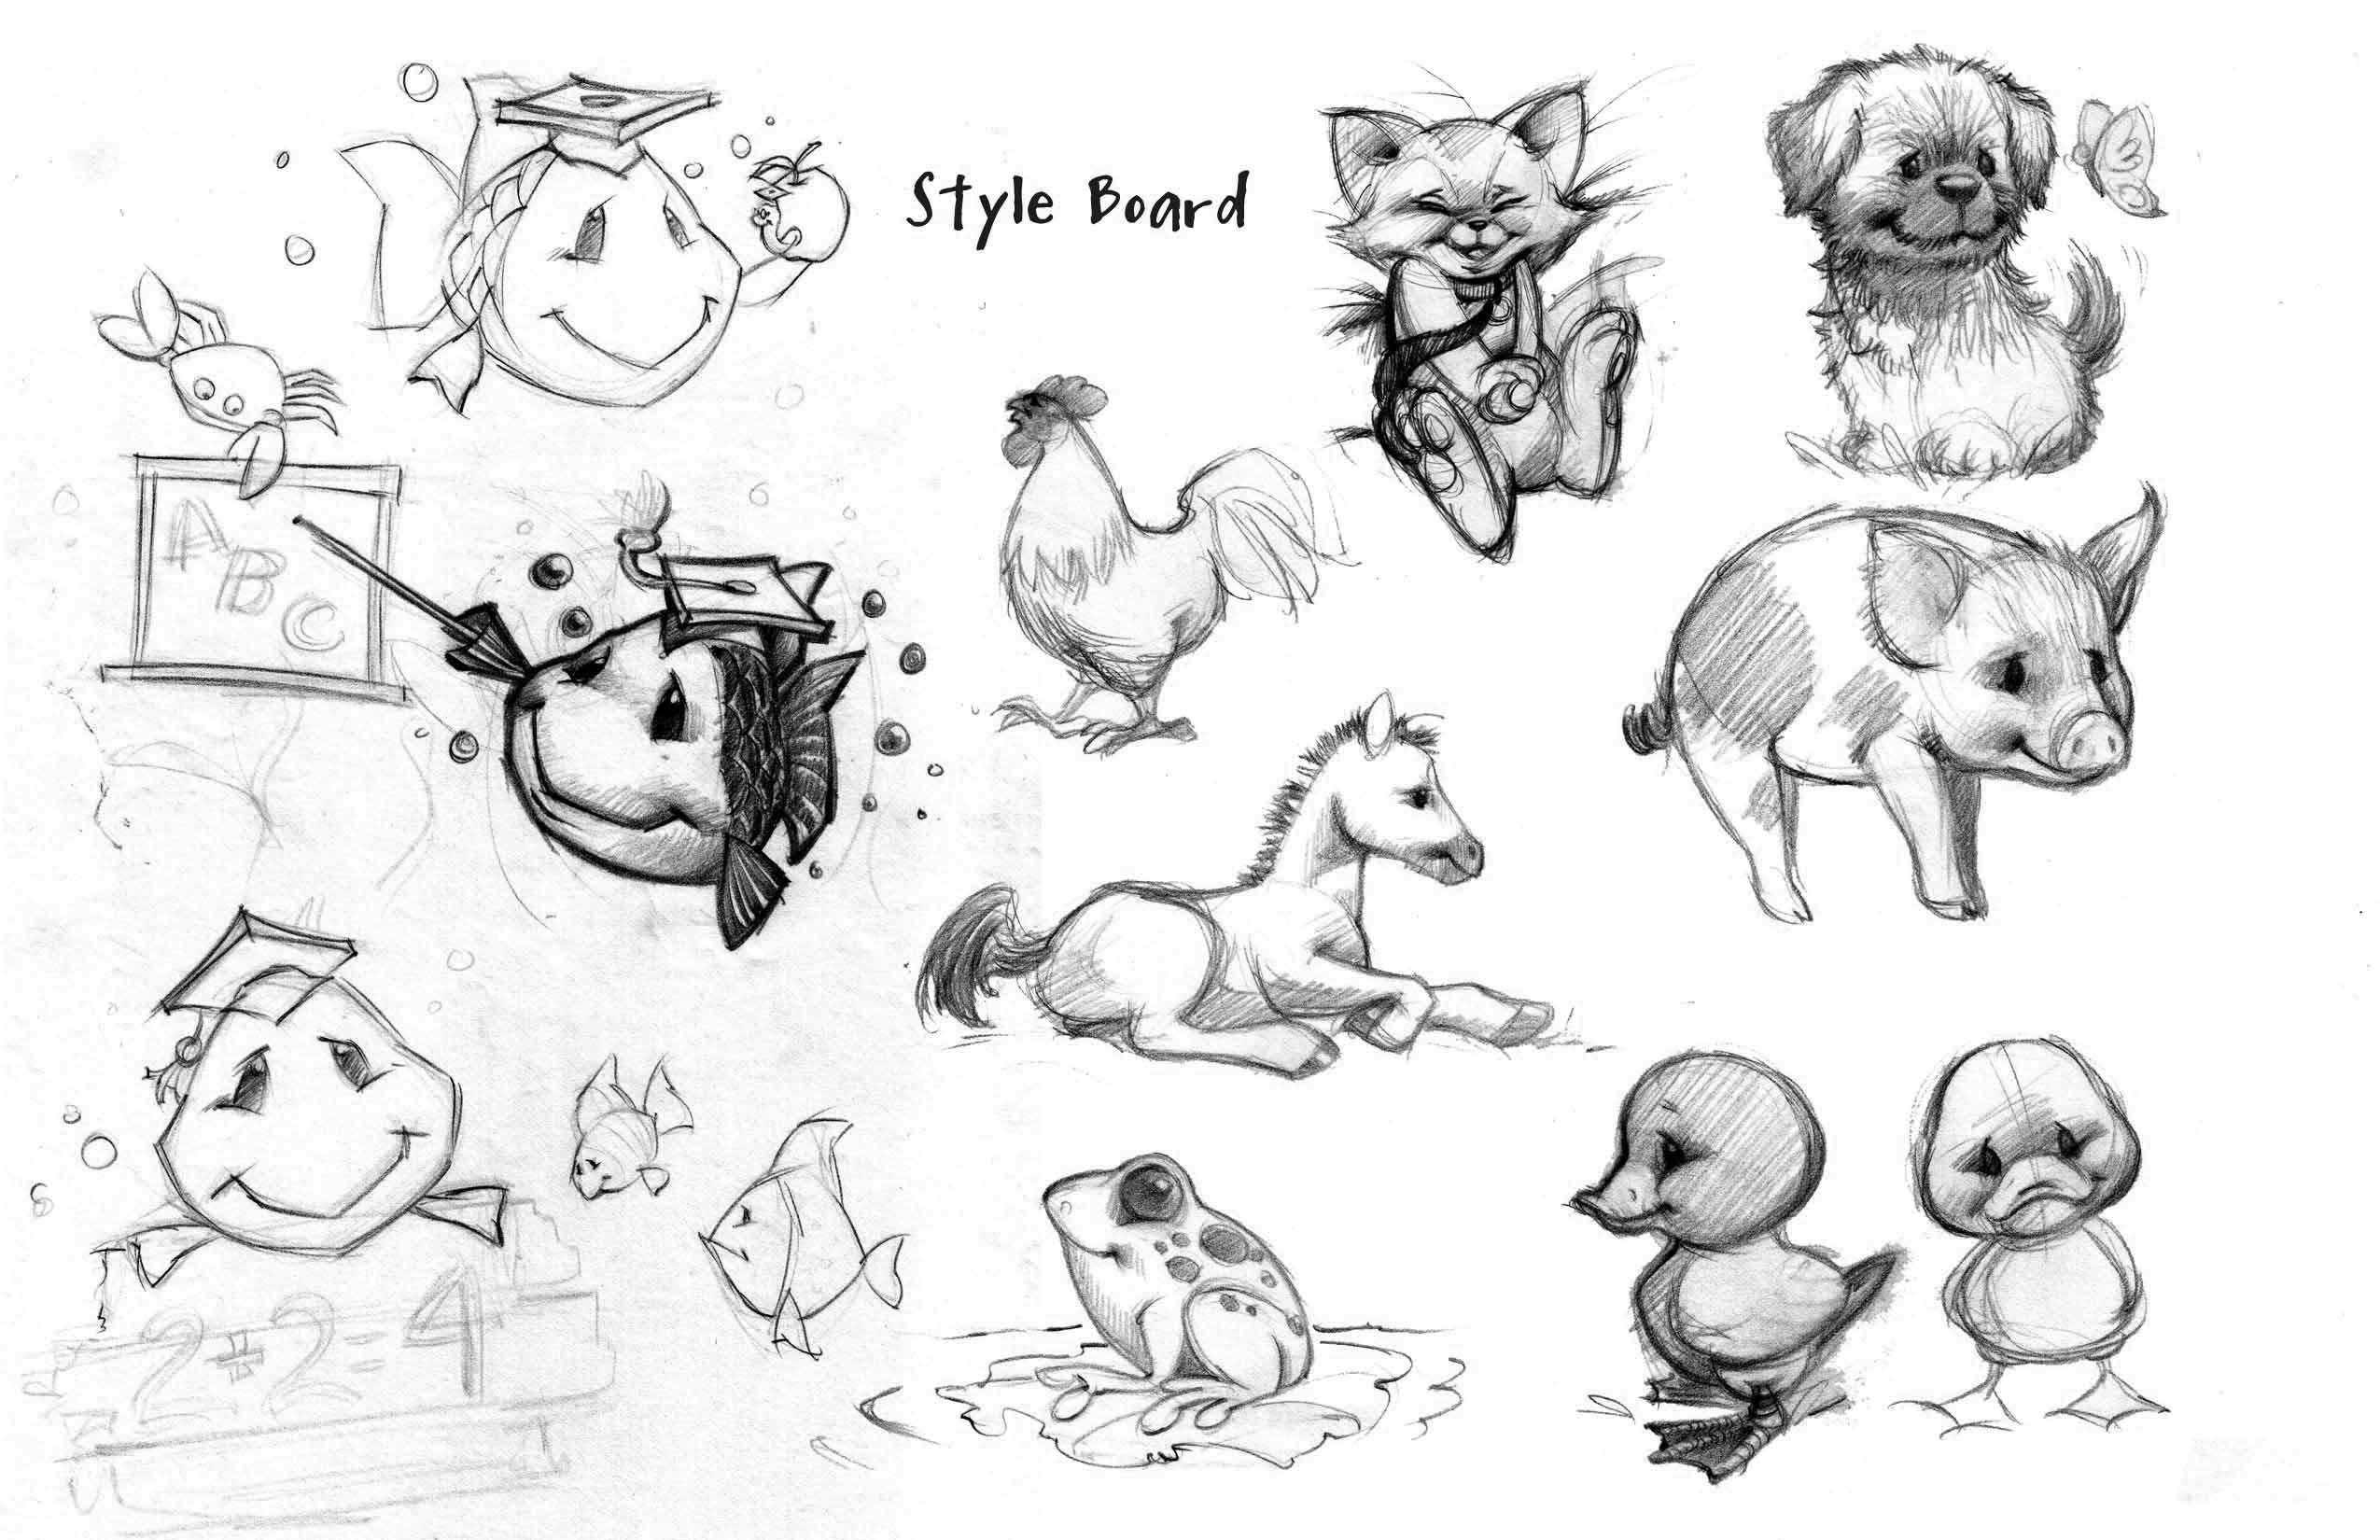 FarmAnimalsAndFishRoughs.jpg